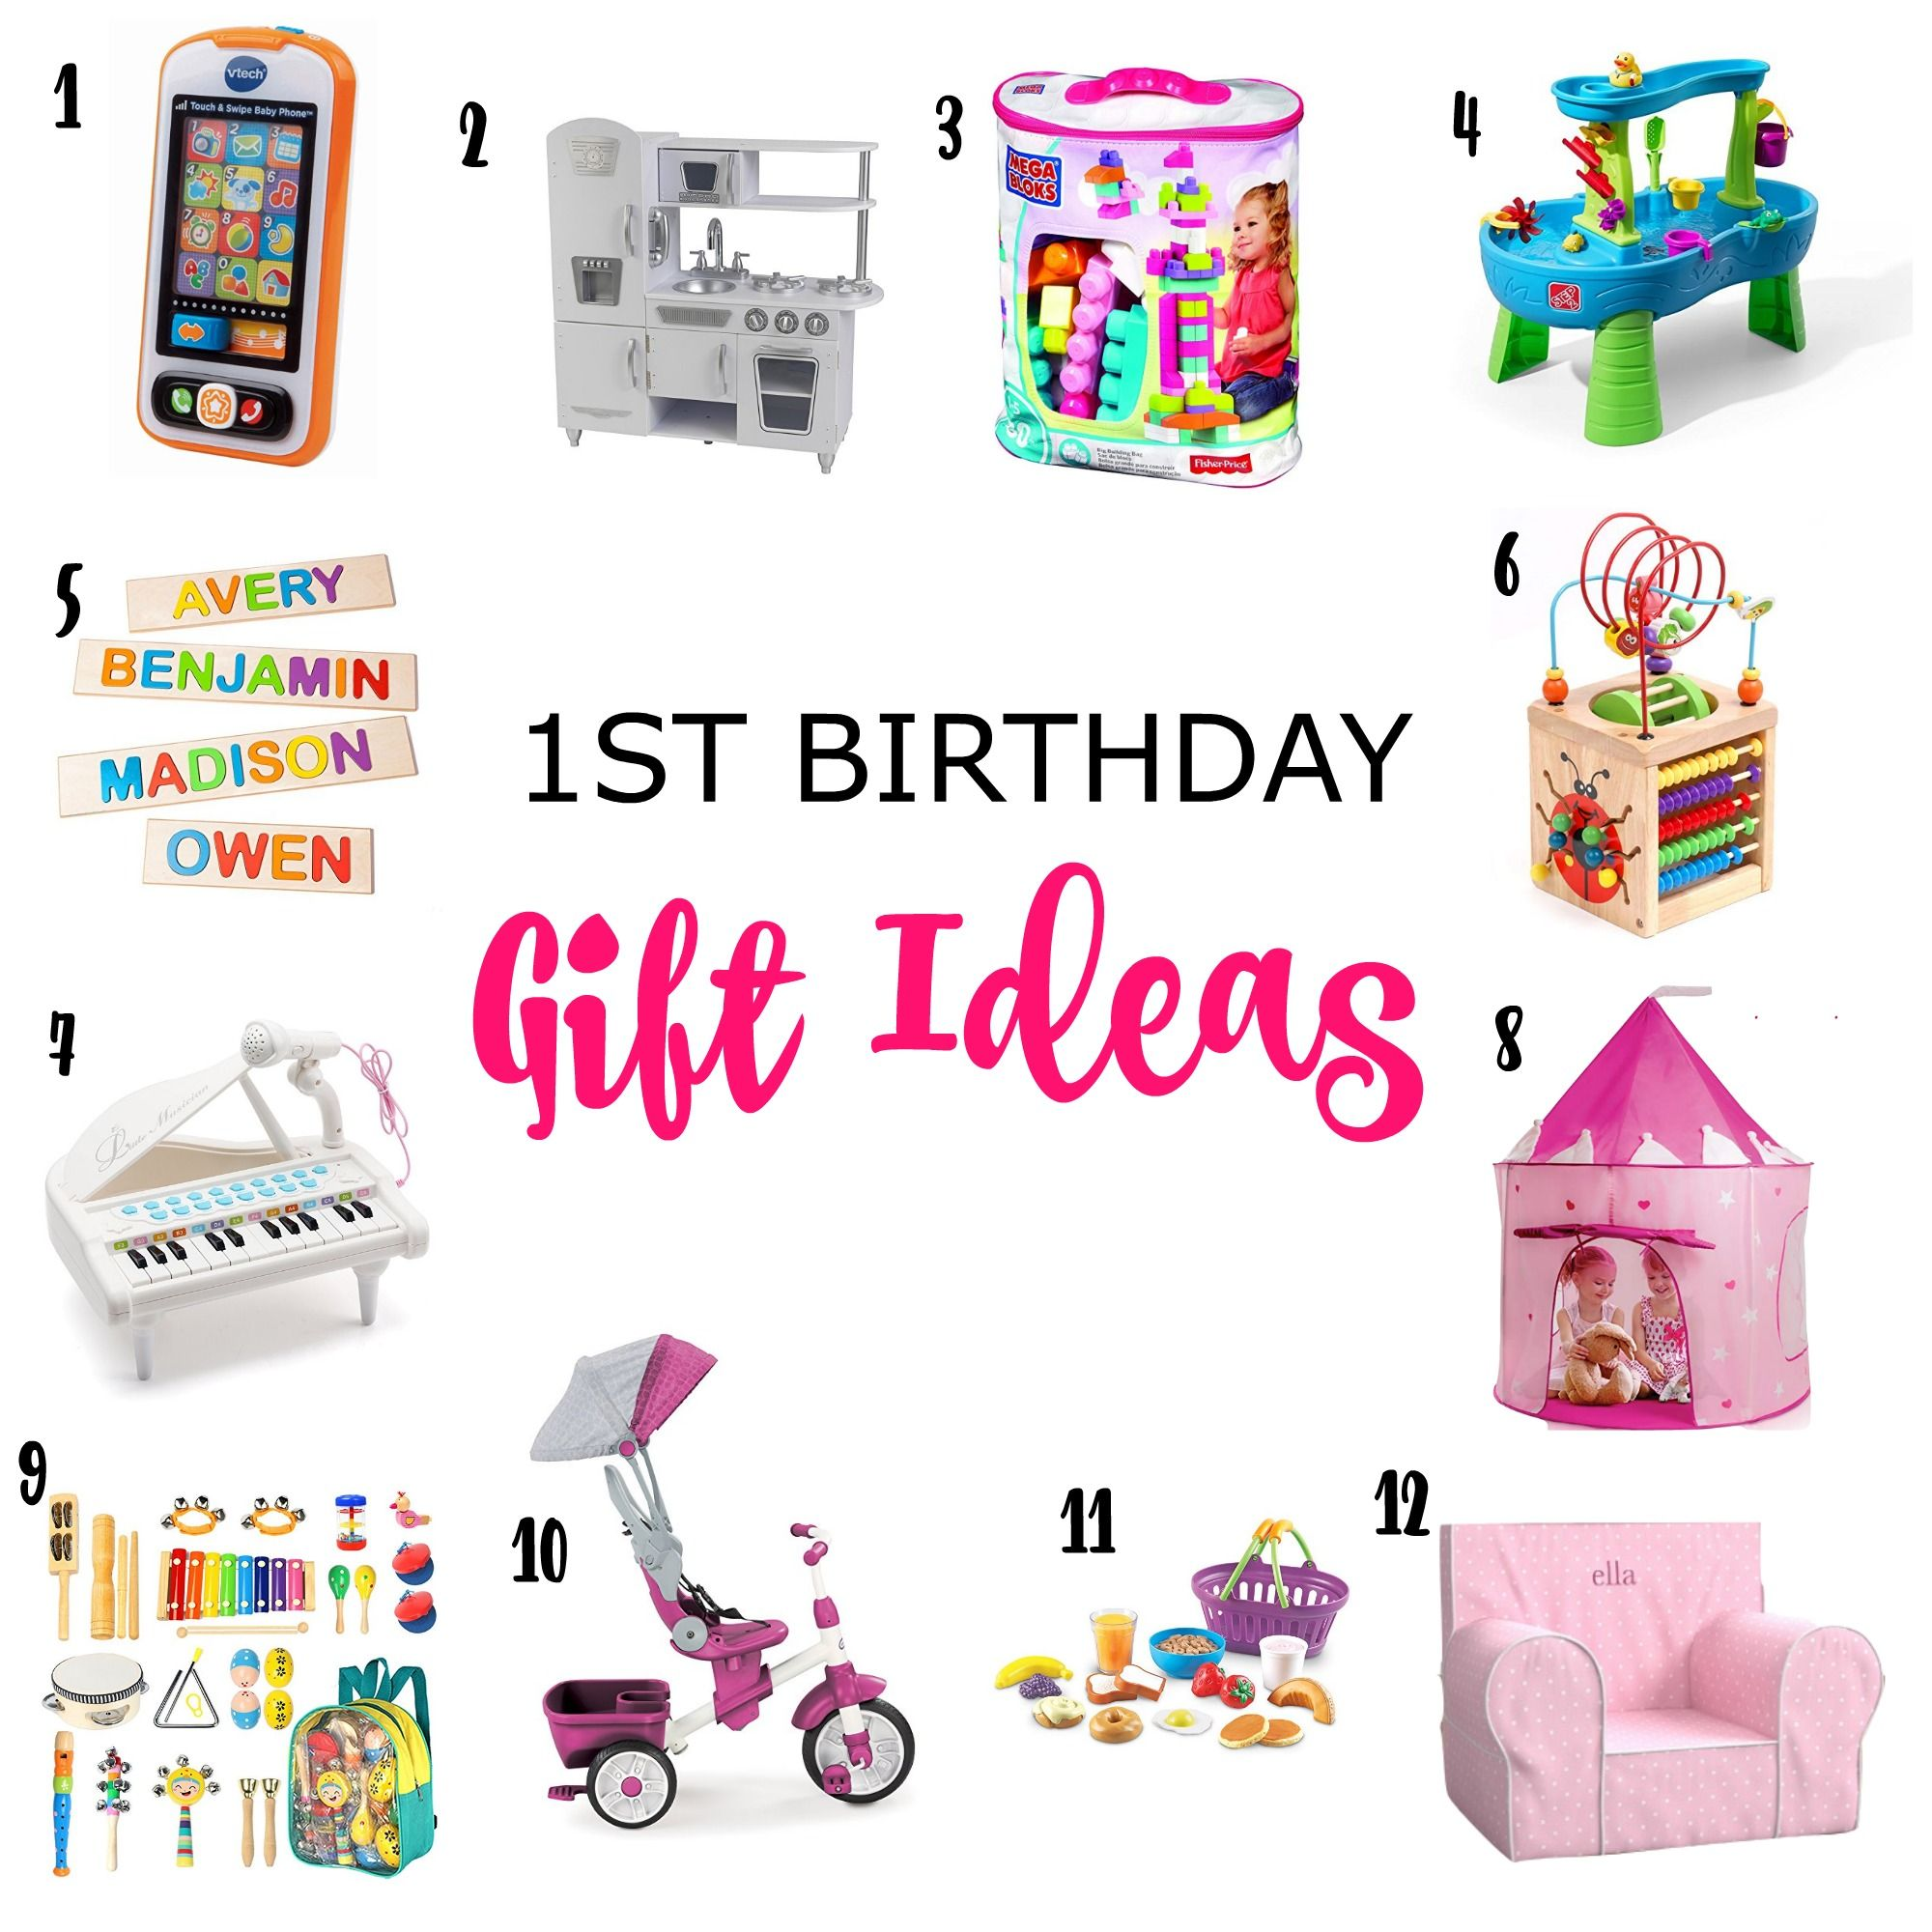 1st Birthday Gift Ideas